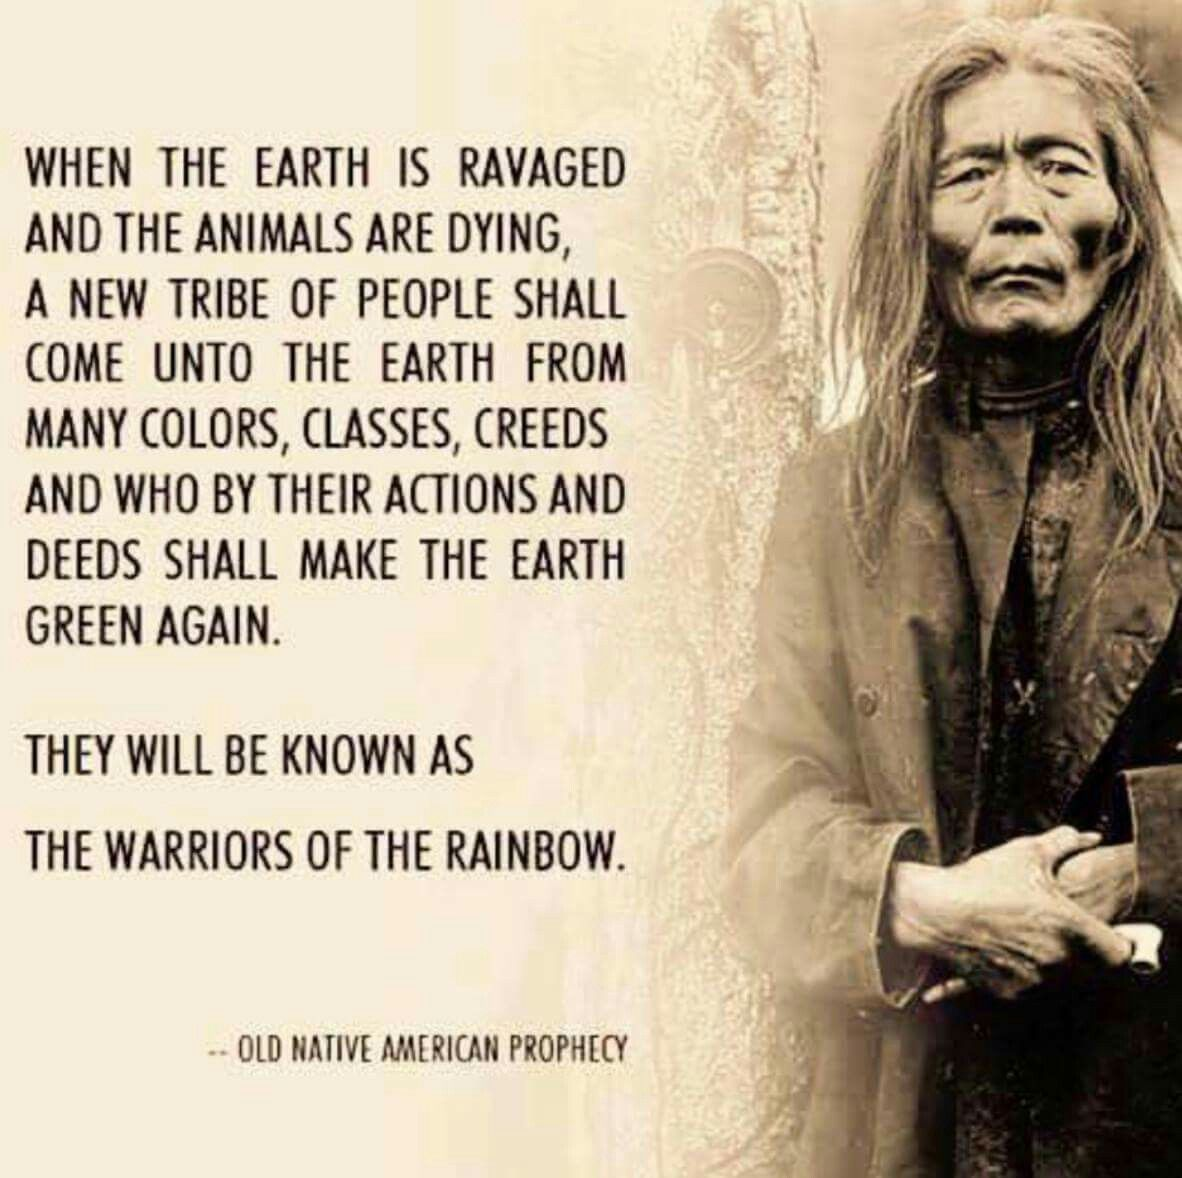 Old Native American Prophecy